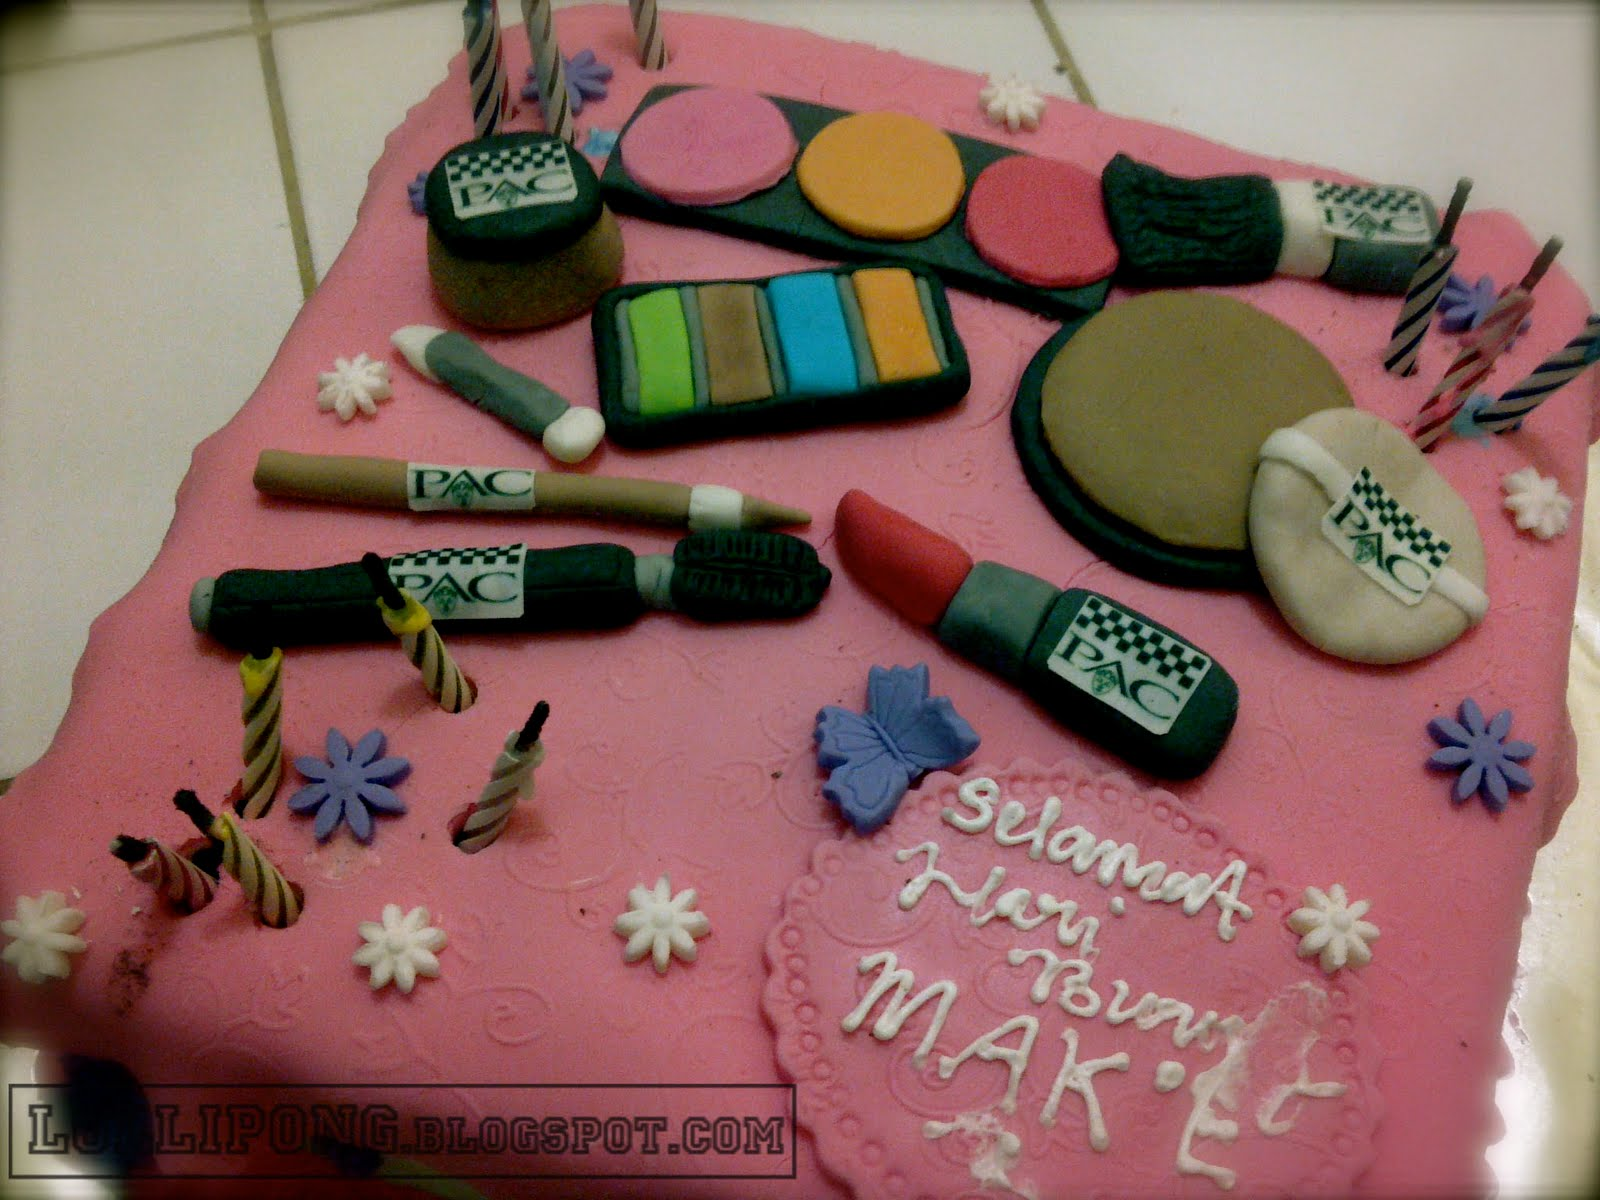 Lollipongs beauty corner my birthday cake my birthday cake some days ago was my 23th bday thecheapjerseys Images